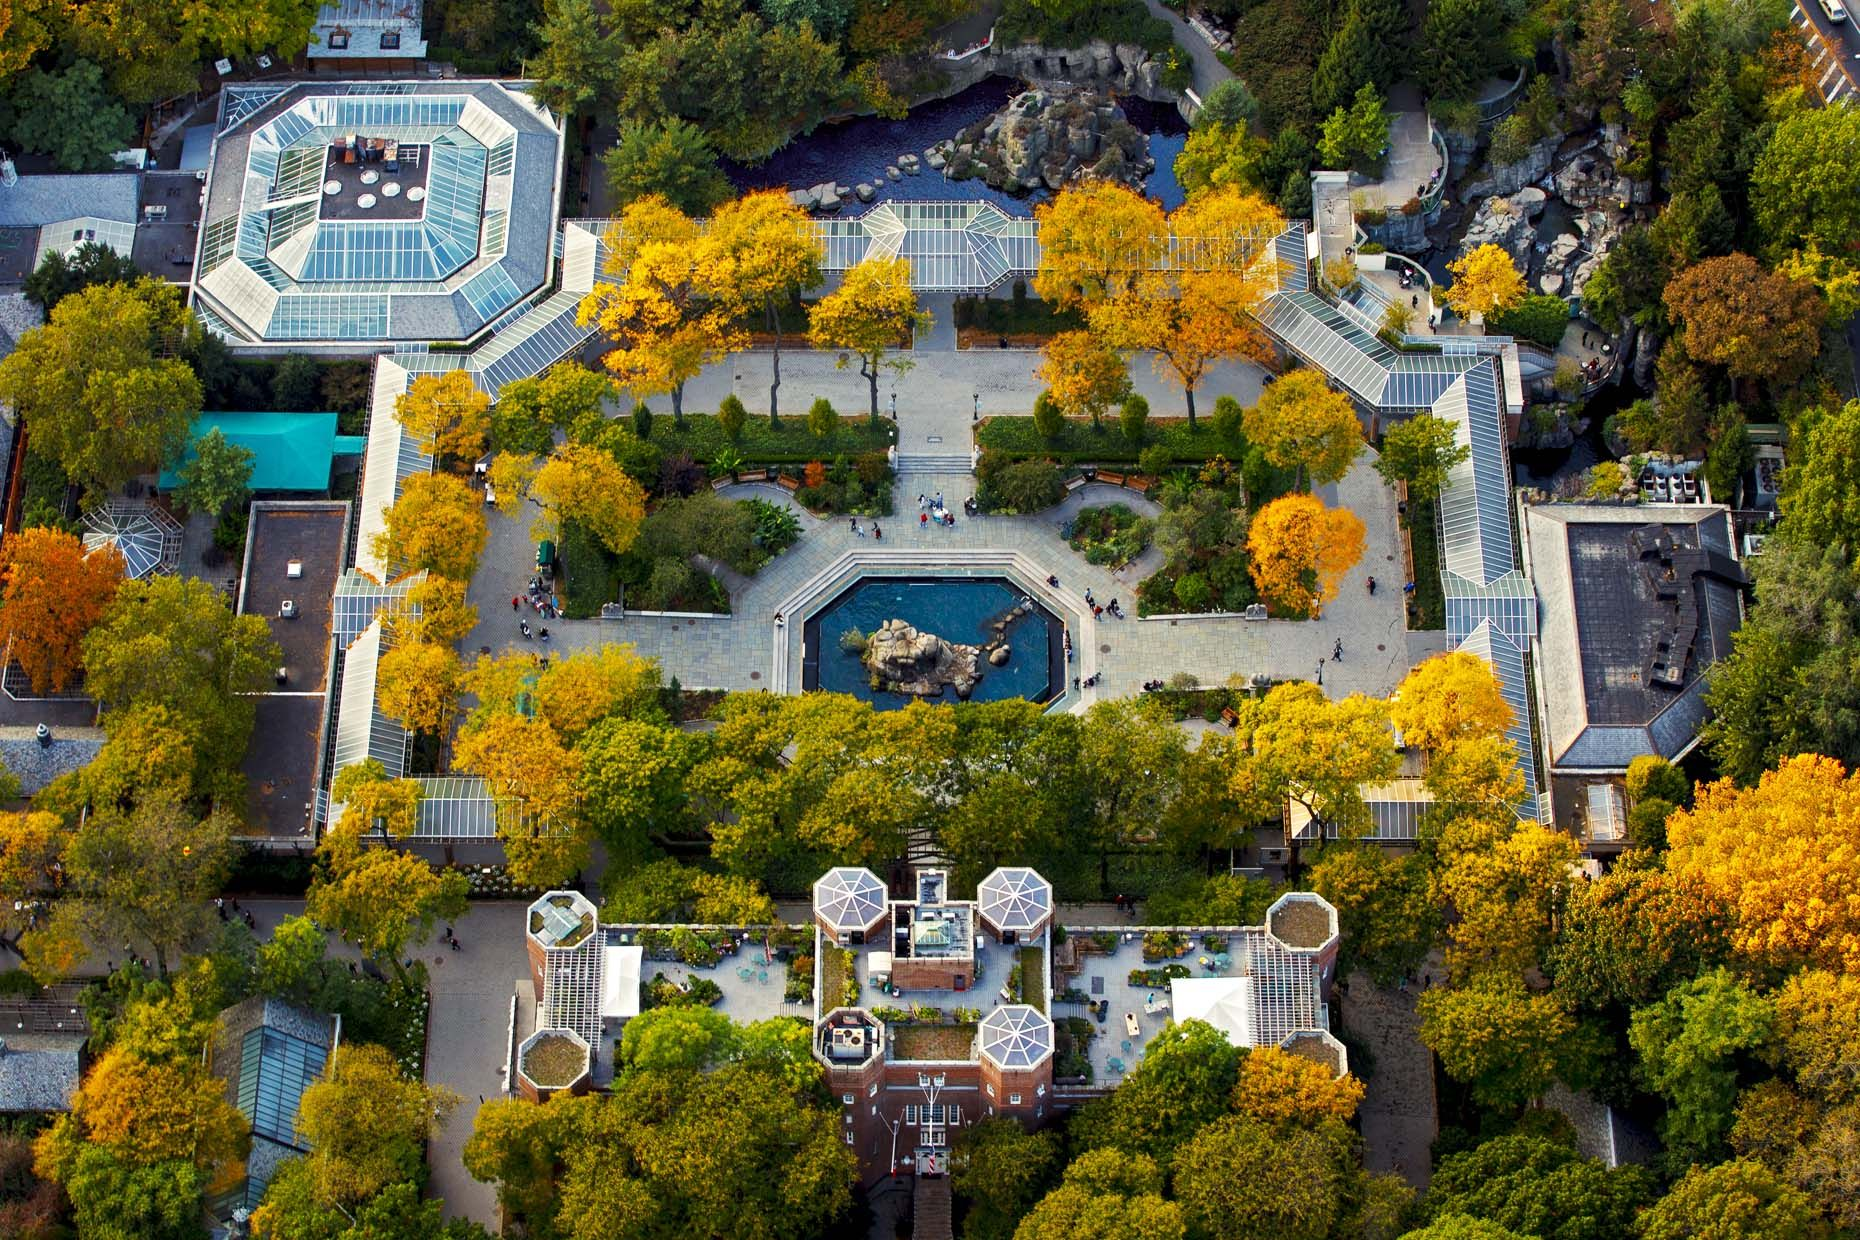 Image result for The Central Park Zoo new york